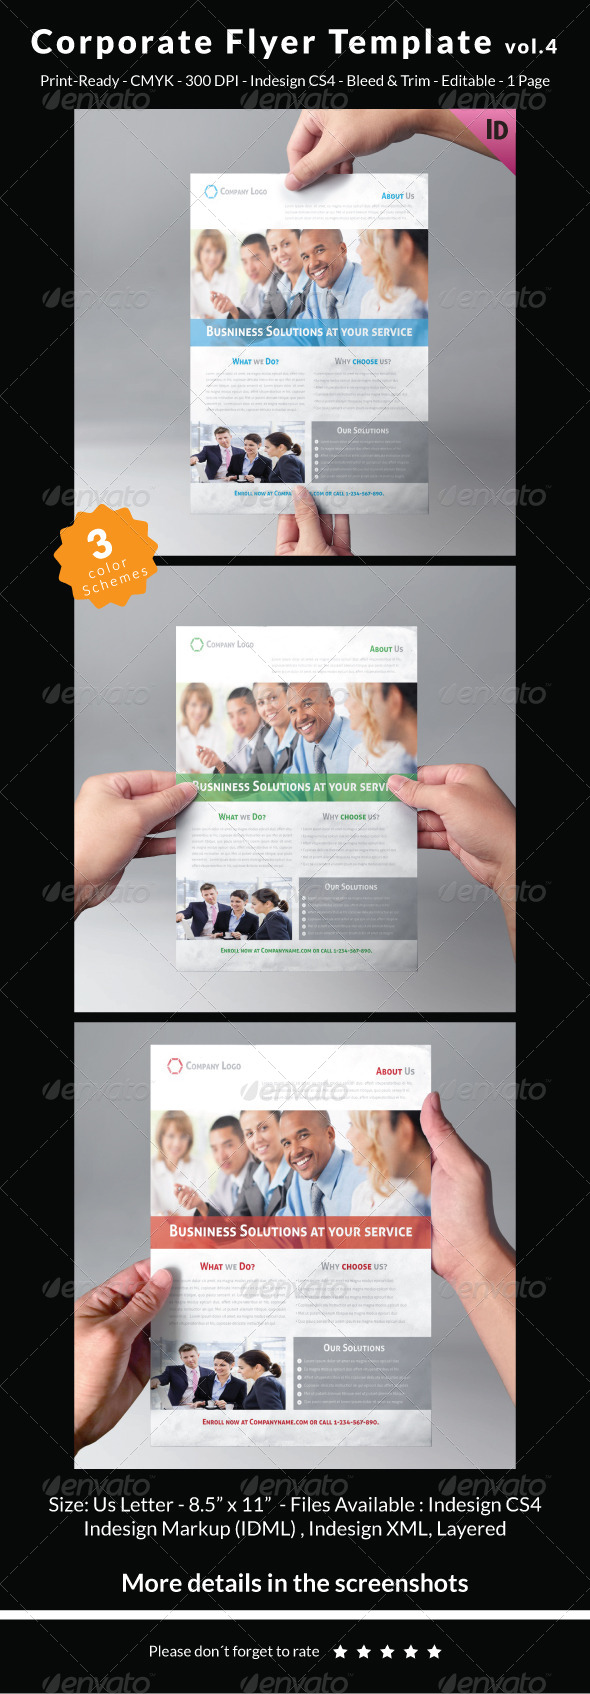 Corporate Flyer Template Vol.4 - Corporate Flyers